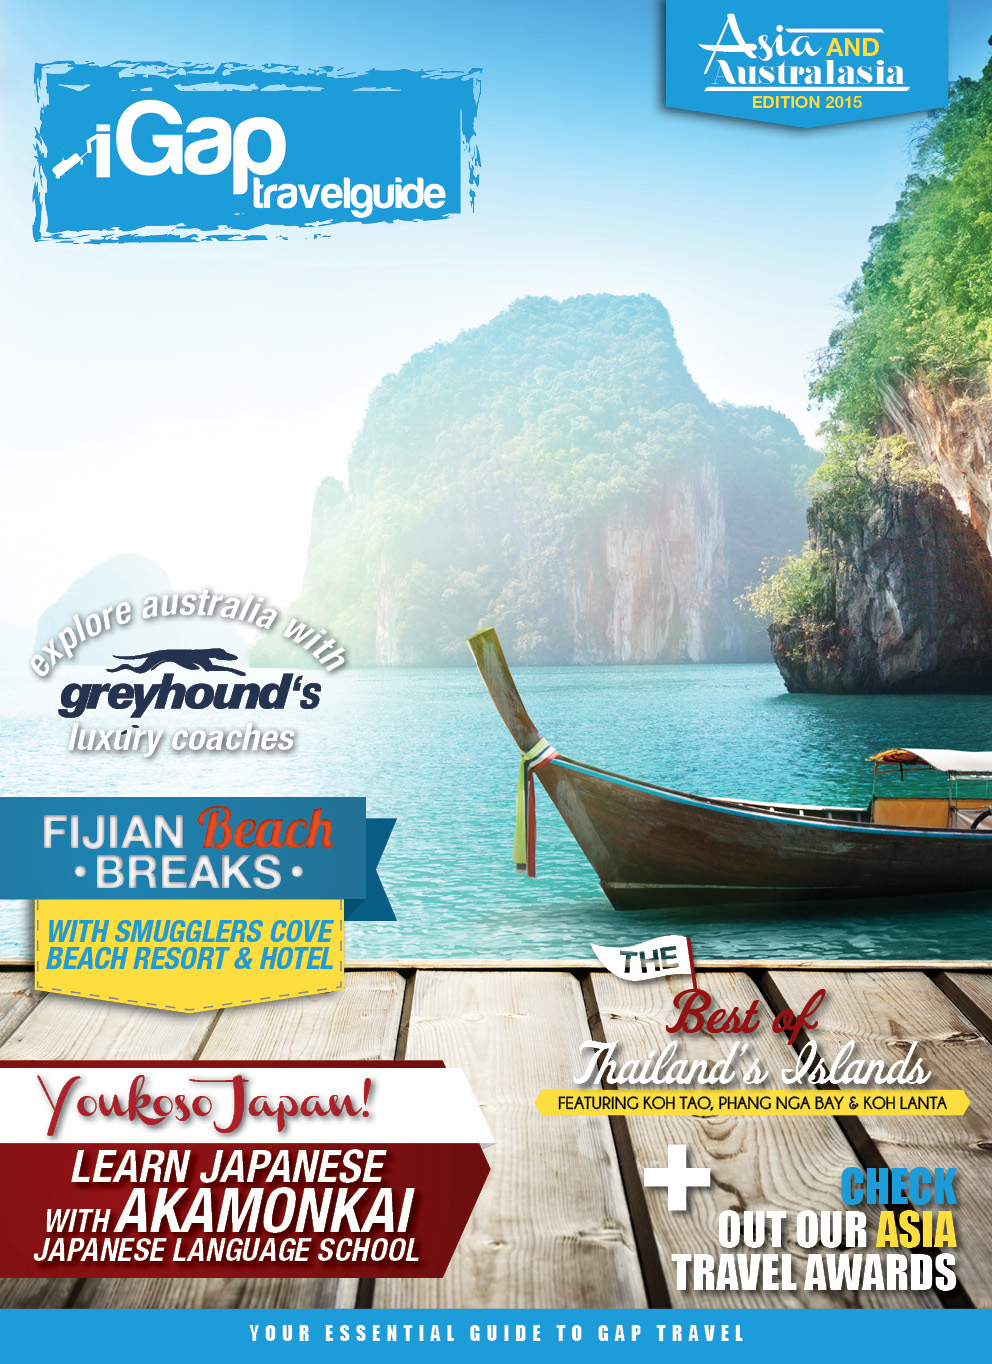 The iGap Travel Guide: Asia & Australasia 2015 - Cover Image